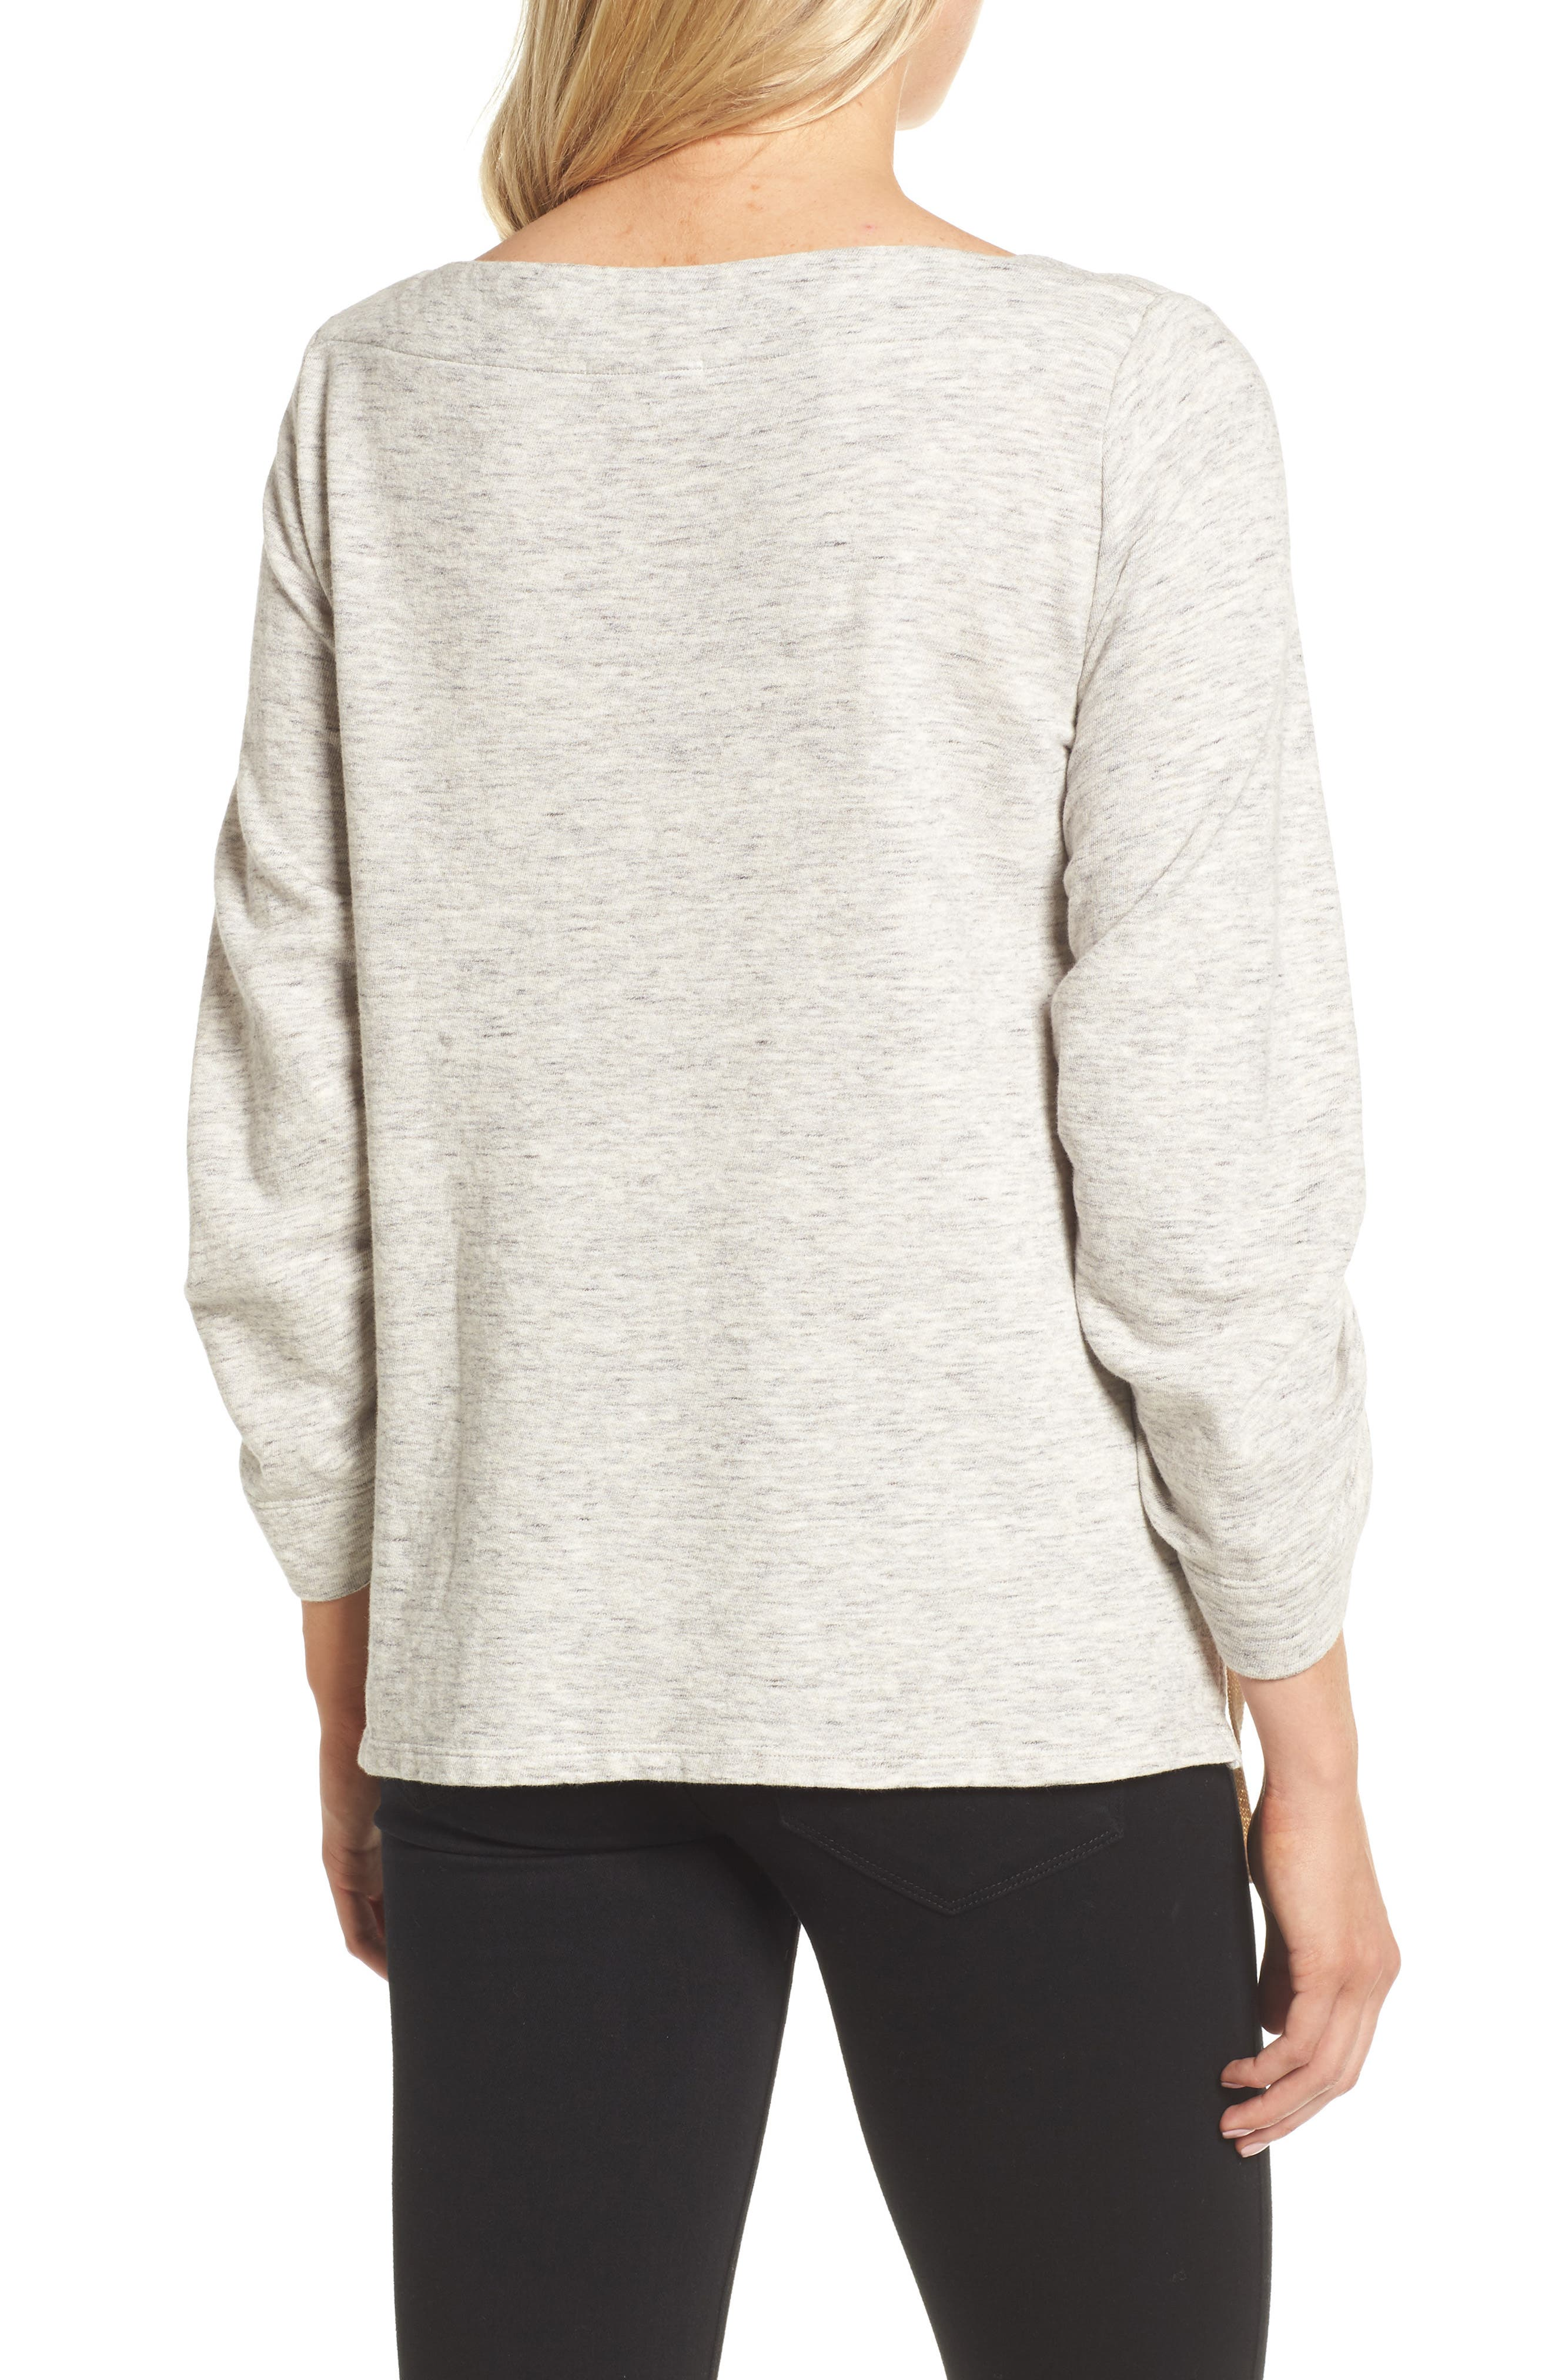 Ruched Sleeve Sweatshirt,                             Alternate thumbnail 2, color,                             024